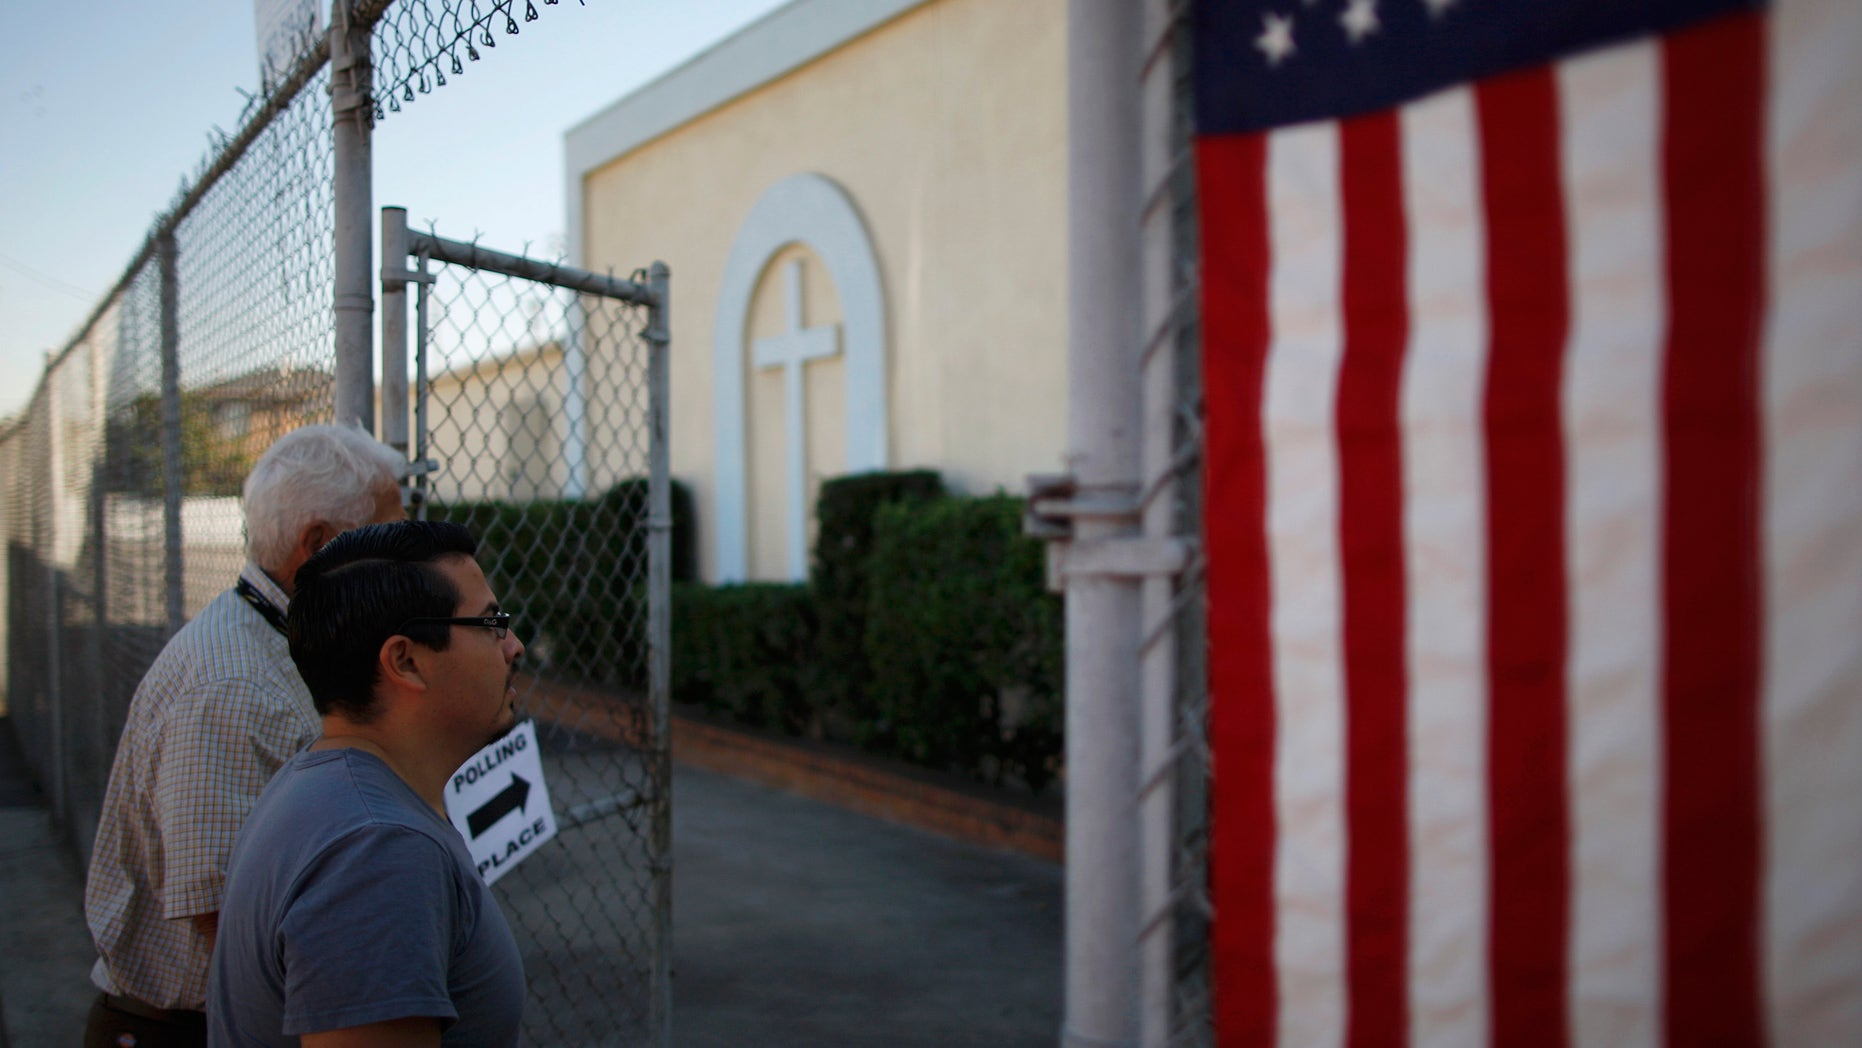 LOS ANGELES, CA - NOVEMBER 6:  People enter a polling place in the heavily Latino East L.A. area during the U.S. presidential election on November 6, 2012 in Los Angeles, California. The election will decide whether Democrat Barack Obama serves a second term as president of the United States or is replaced by Republican rival, former Massachusetts Gov. Mitt Romney.   (Photo by David McNew/Getty Images)